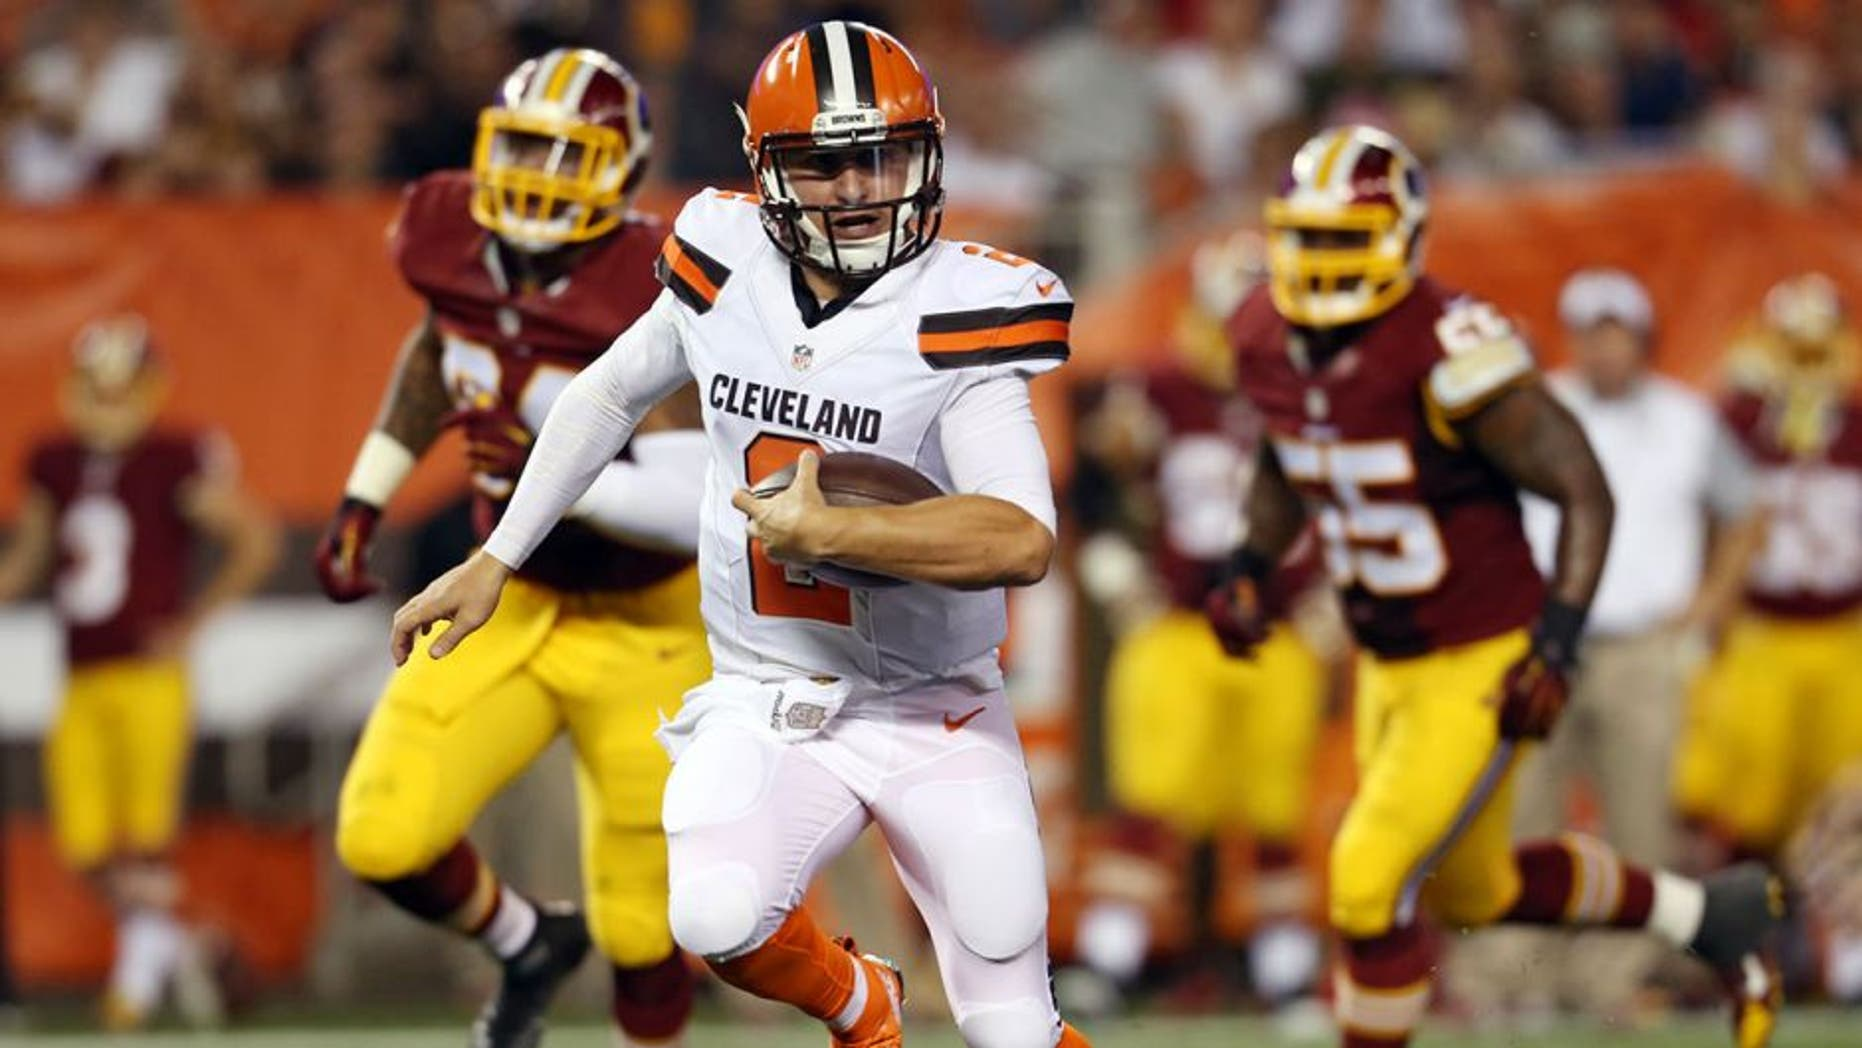 Cleveland Browns quarterback Johnny Manziel (2) scrambles for a 12-yard touchdown during the second quarter of an NFL preseason football game against the Washington Redskins, Thursday, Aug. 13, 2015, in Cleveland. (AP Photo/Ron Schwane)